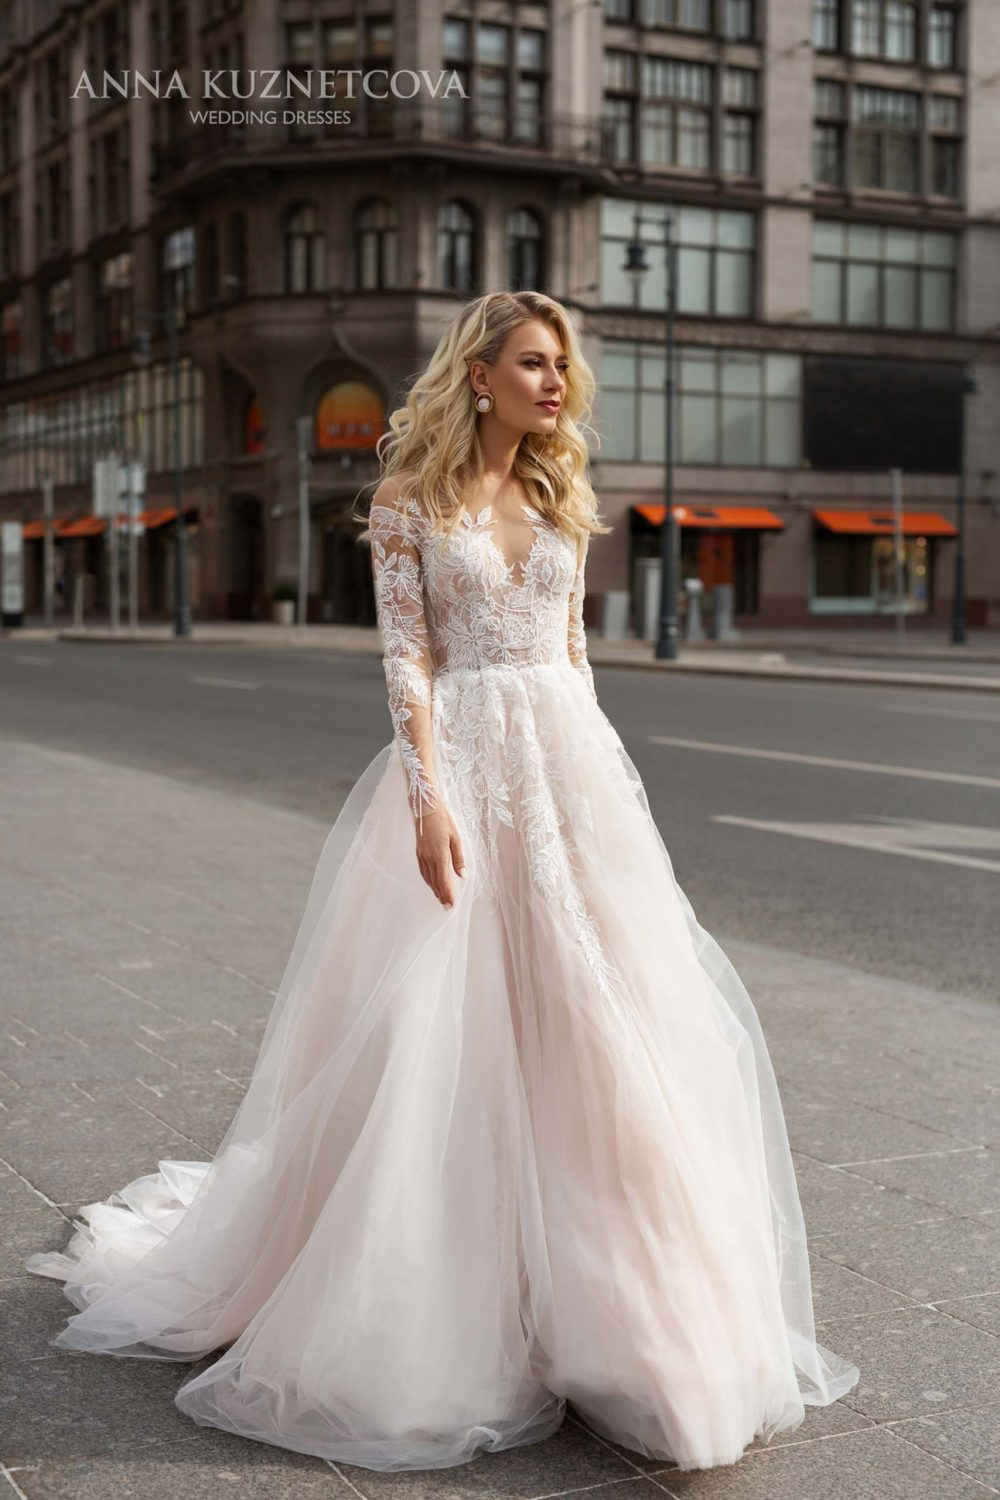 Wedding dress Anna Kuznetcova Ninon